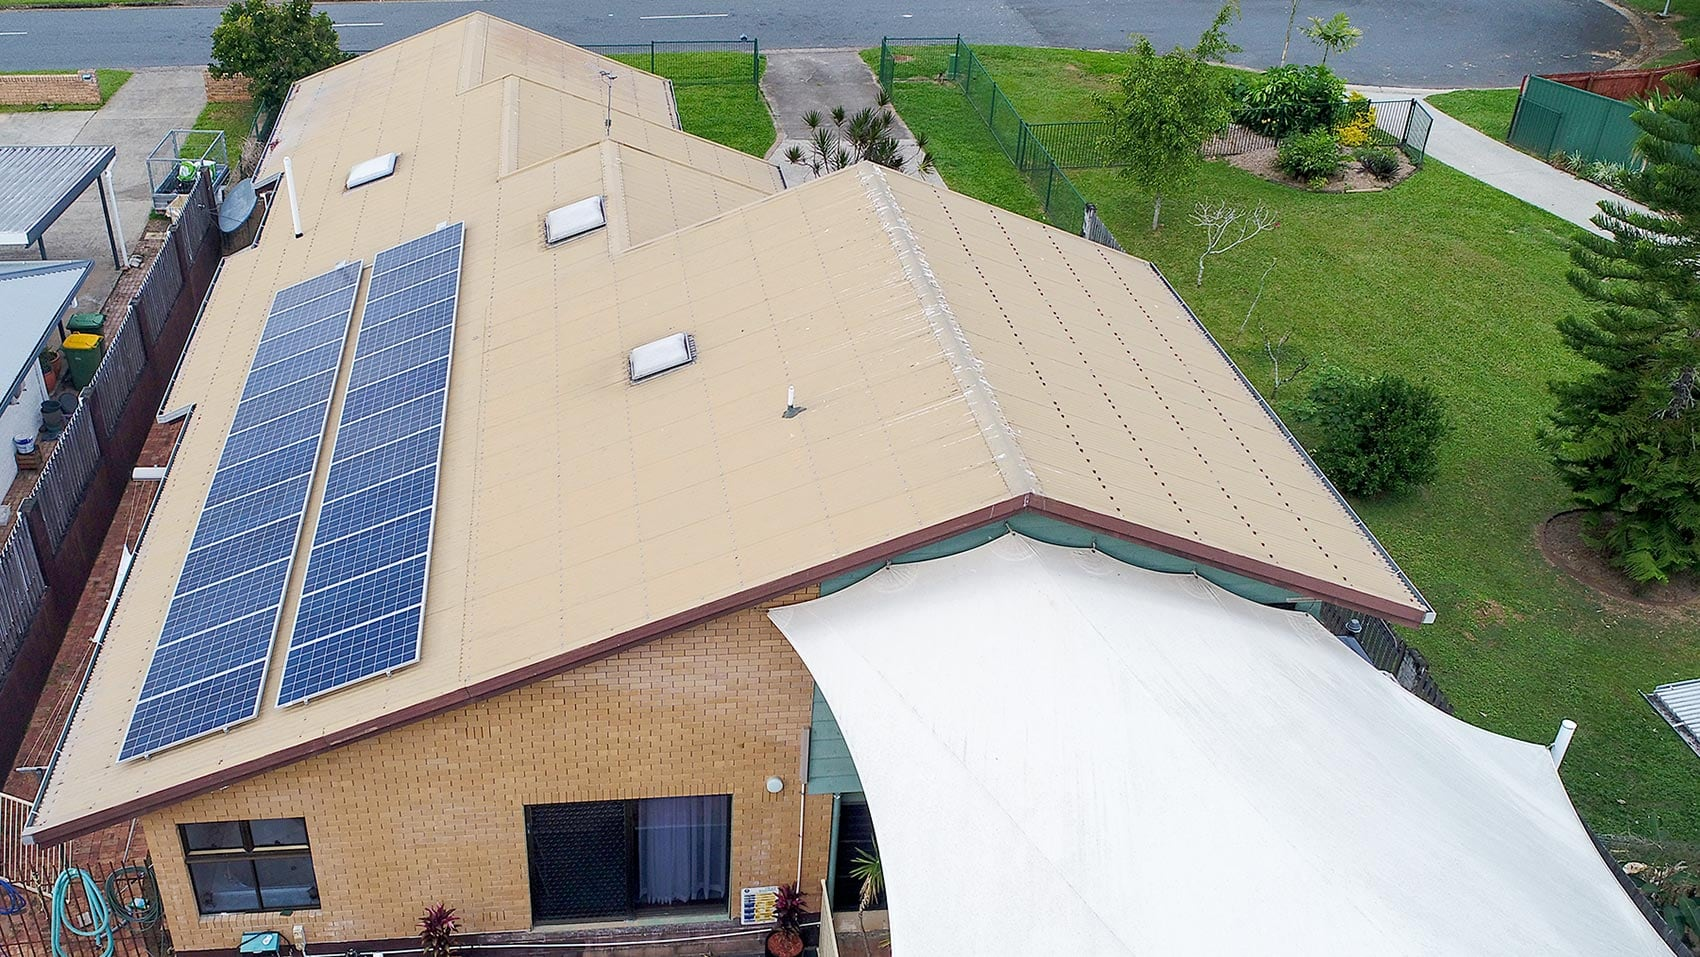 solar panels on the roof of a residence